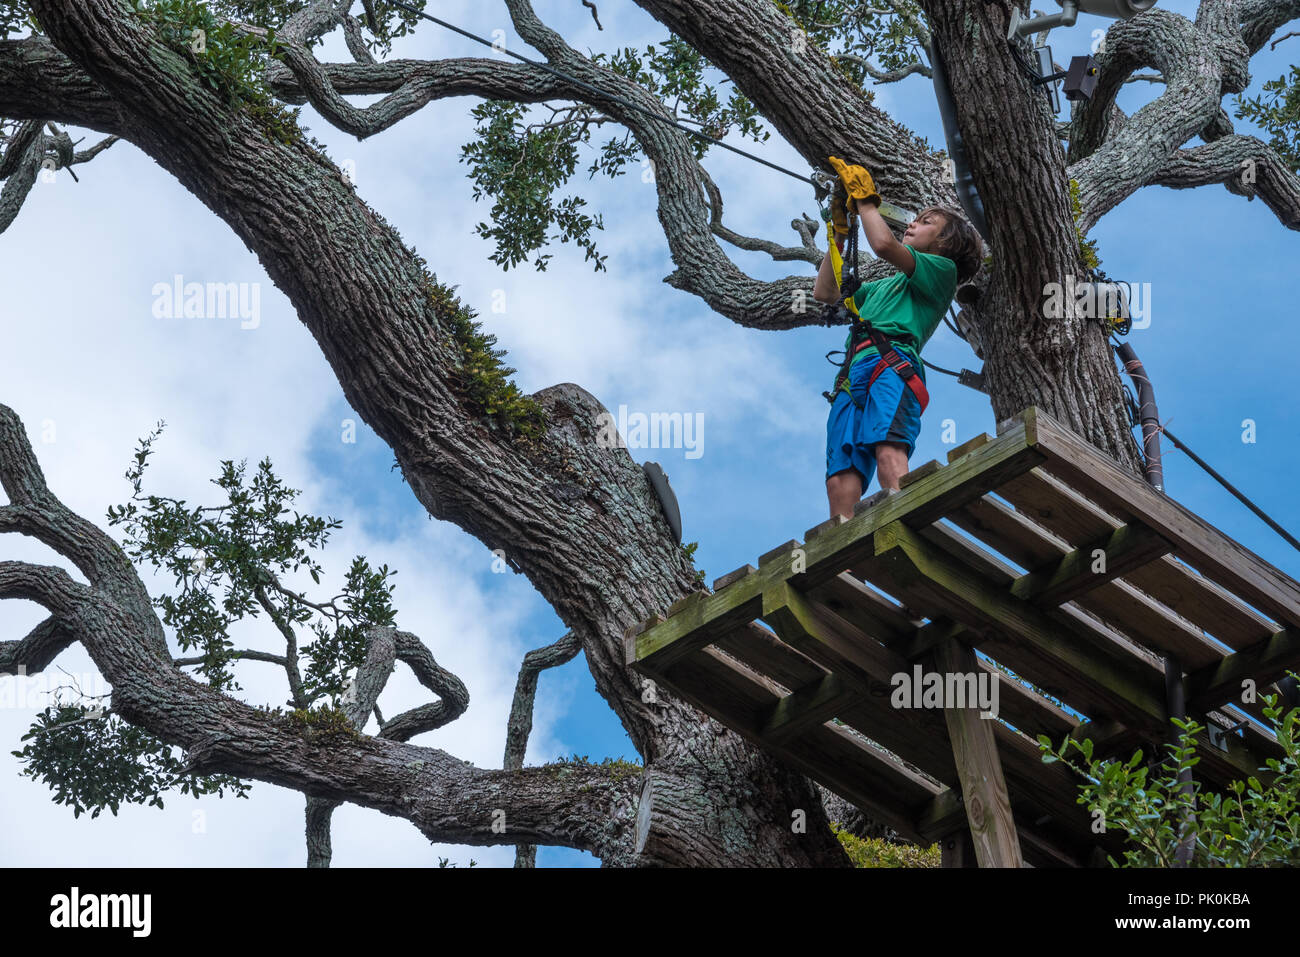 Young boy checking the continuous belay system on a treetop platform at the Crocodile Crossing zip line course above St. Augustine Alligator Farm. - Stock Image